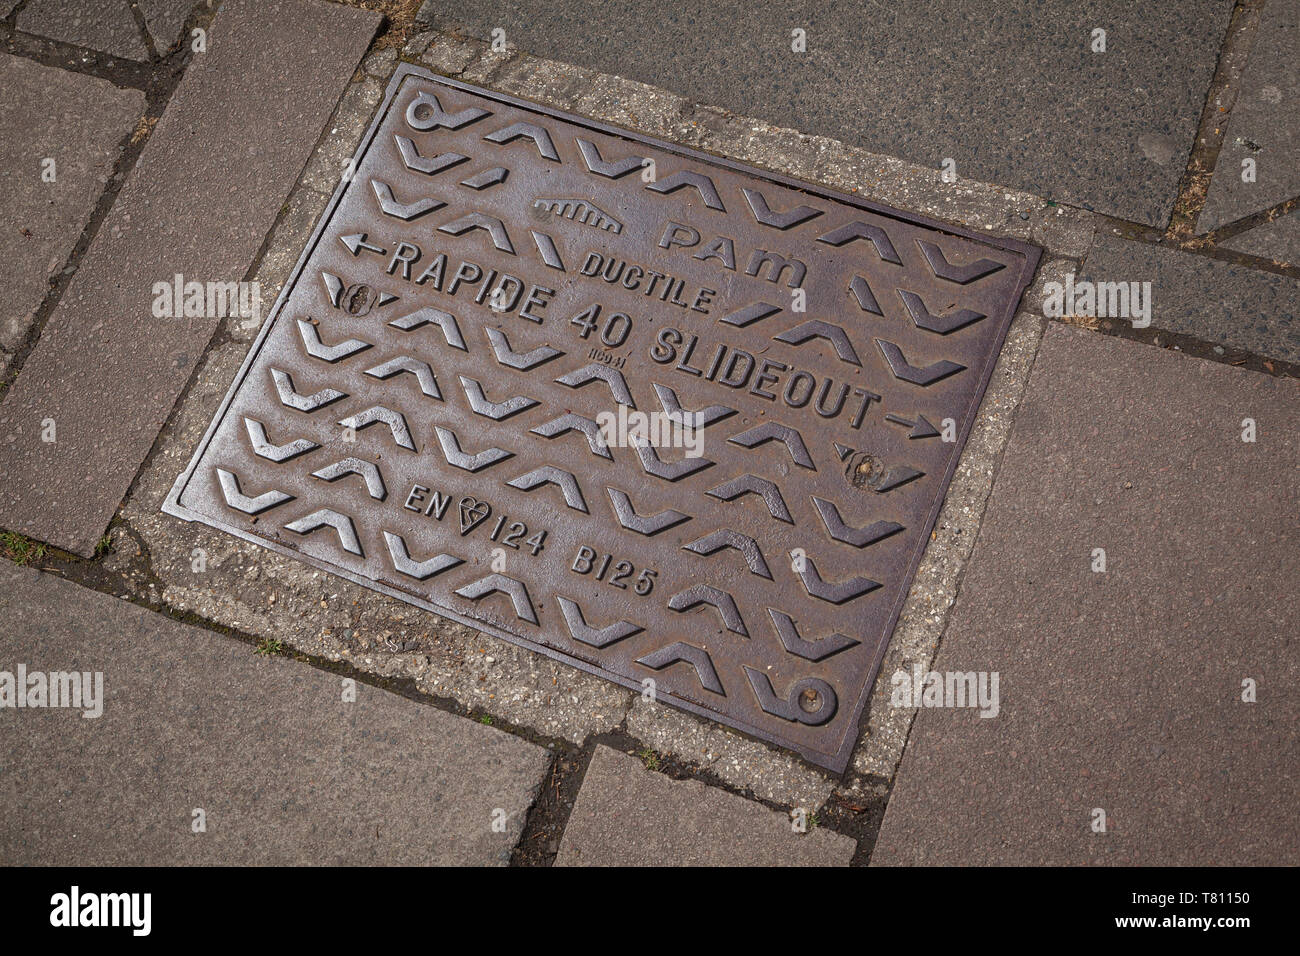 A cast-iron manhole cover marked 'Rapide 40 Slideout', 'Ductile' and 'PAM'. - Stock Image